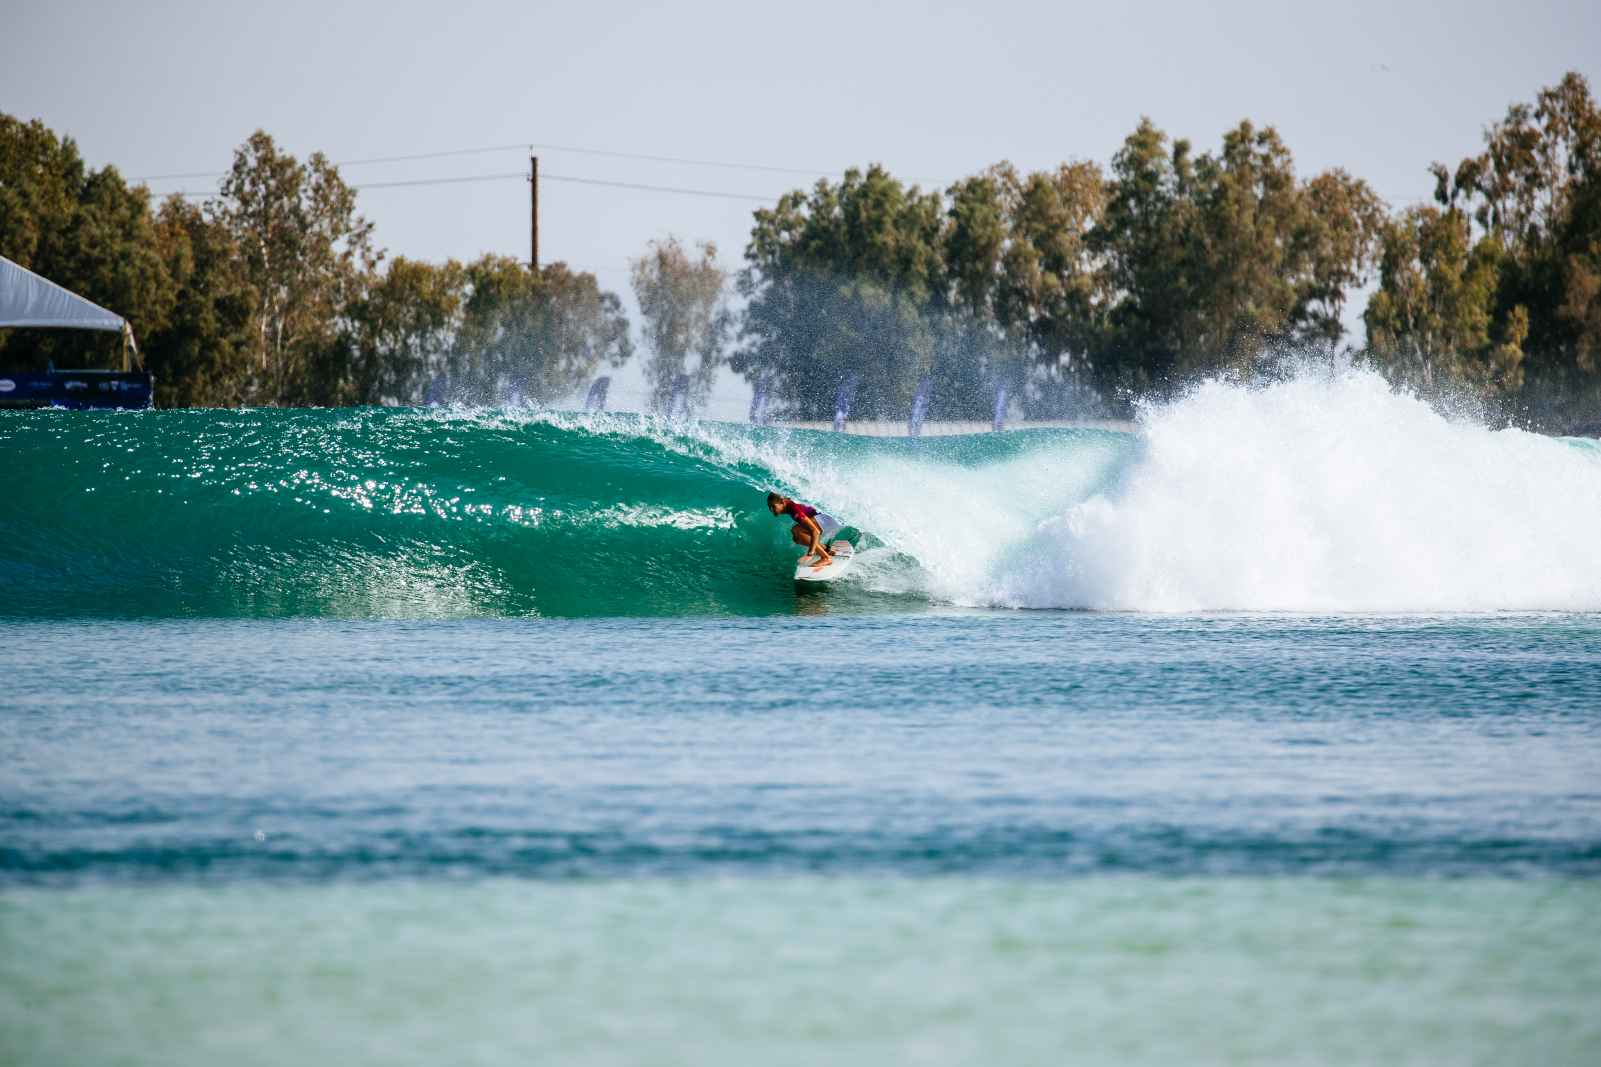 surf30 surf ranch pro 2021 wsl surf Gilmore S Ranch21 THF2848 2